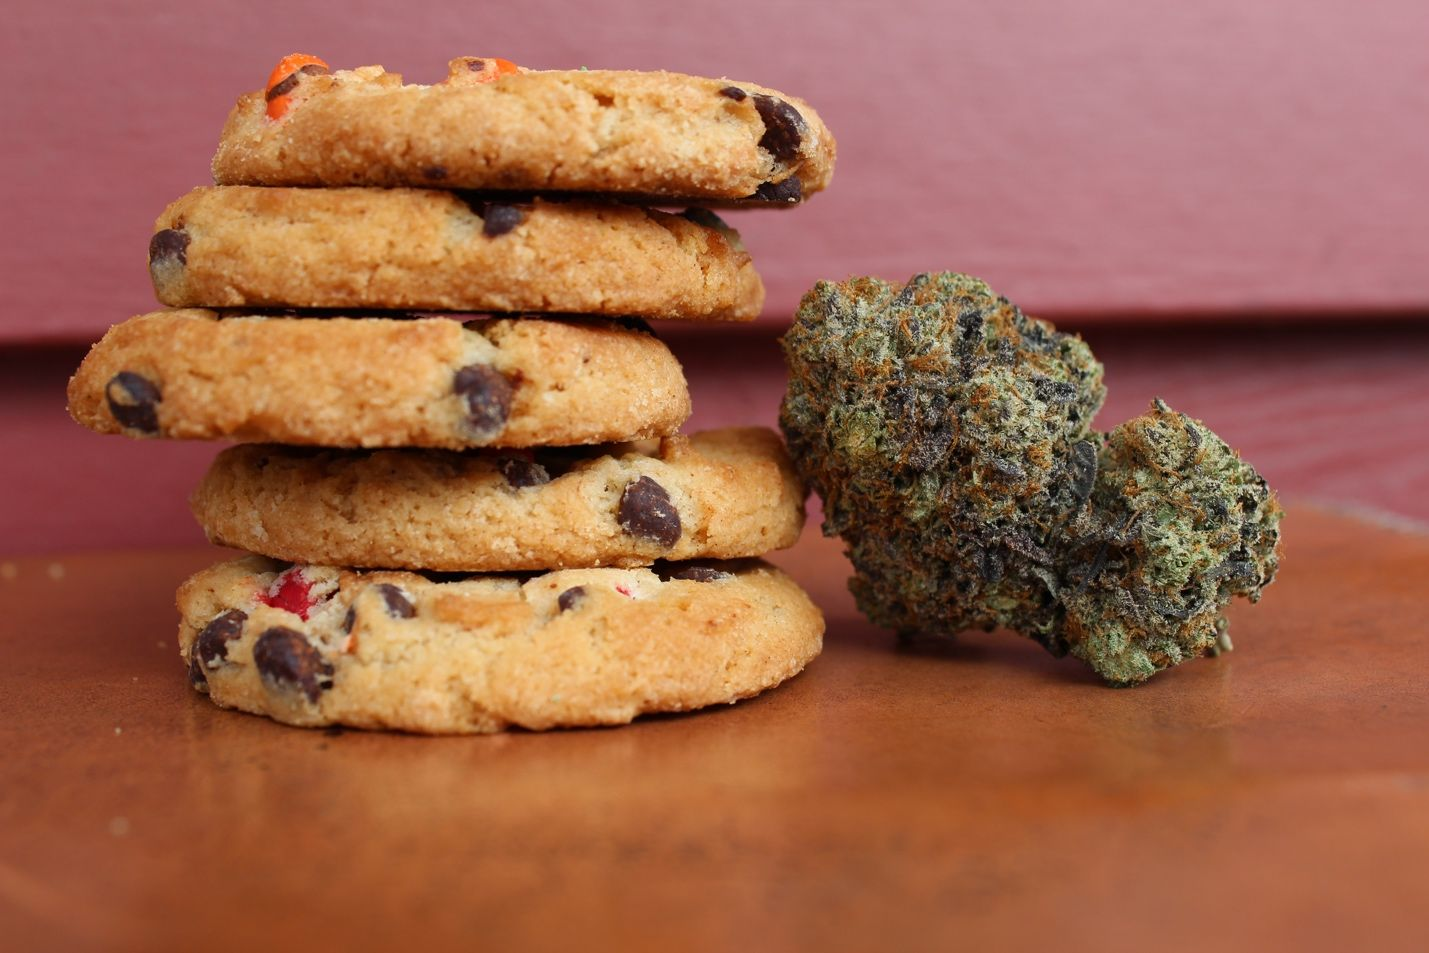 How are Edibles Different than Smoking?